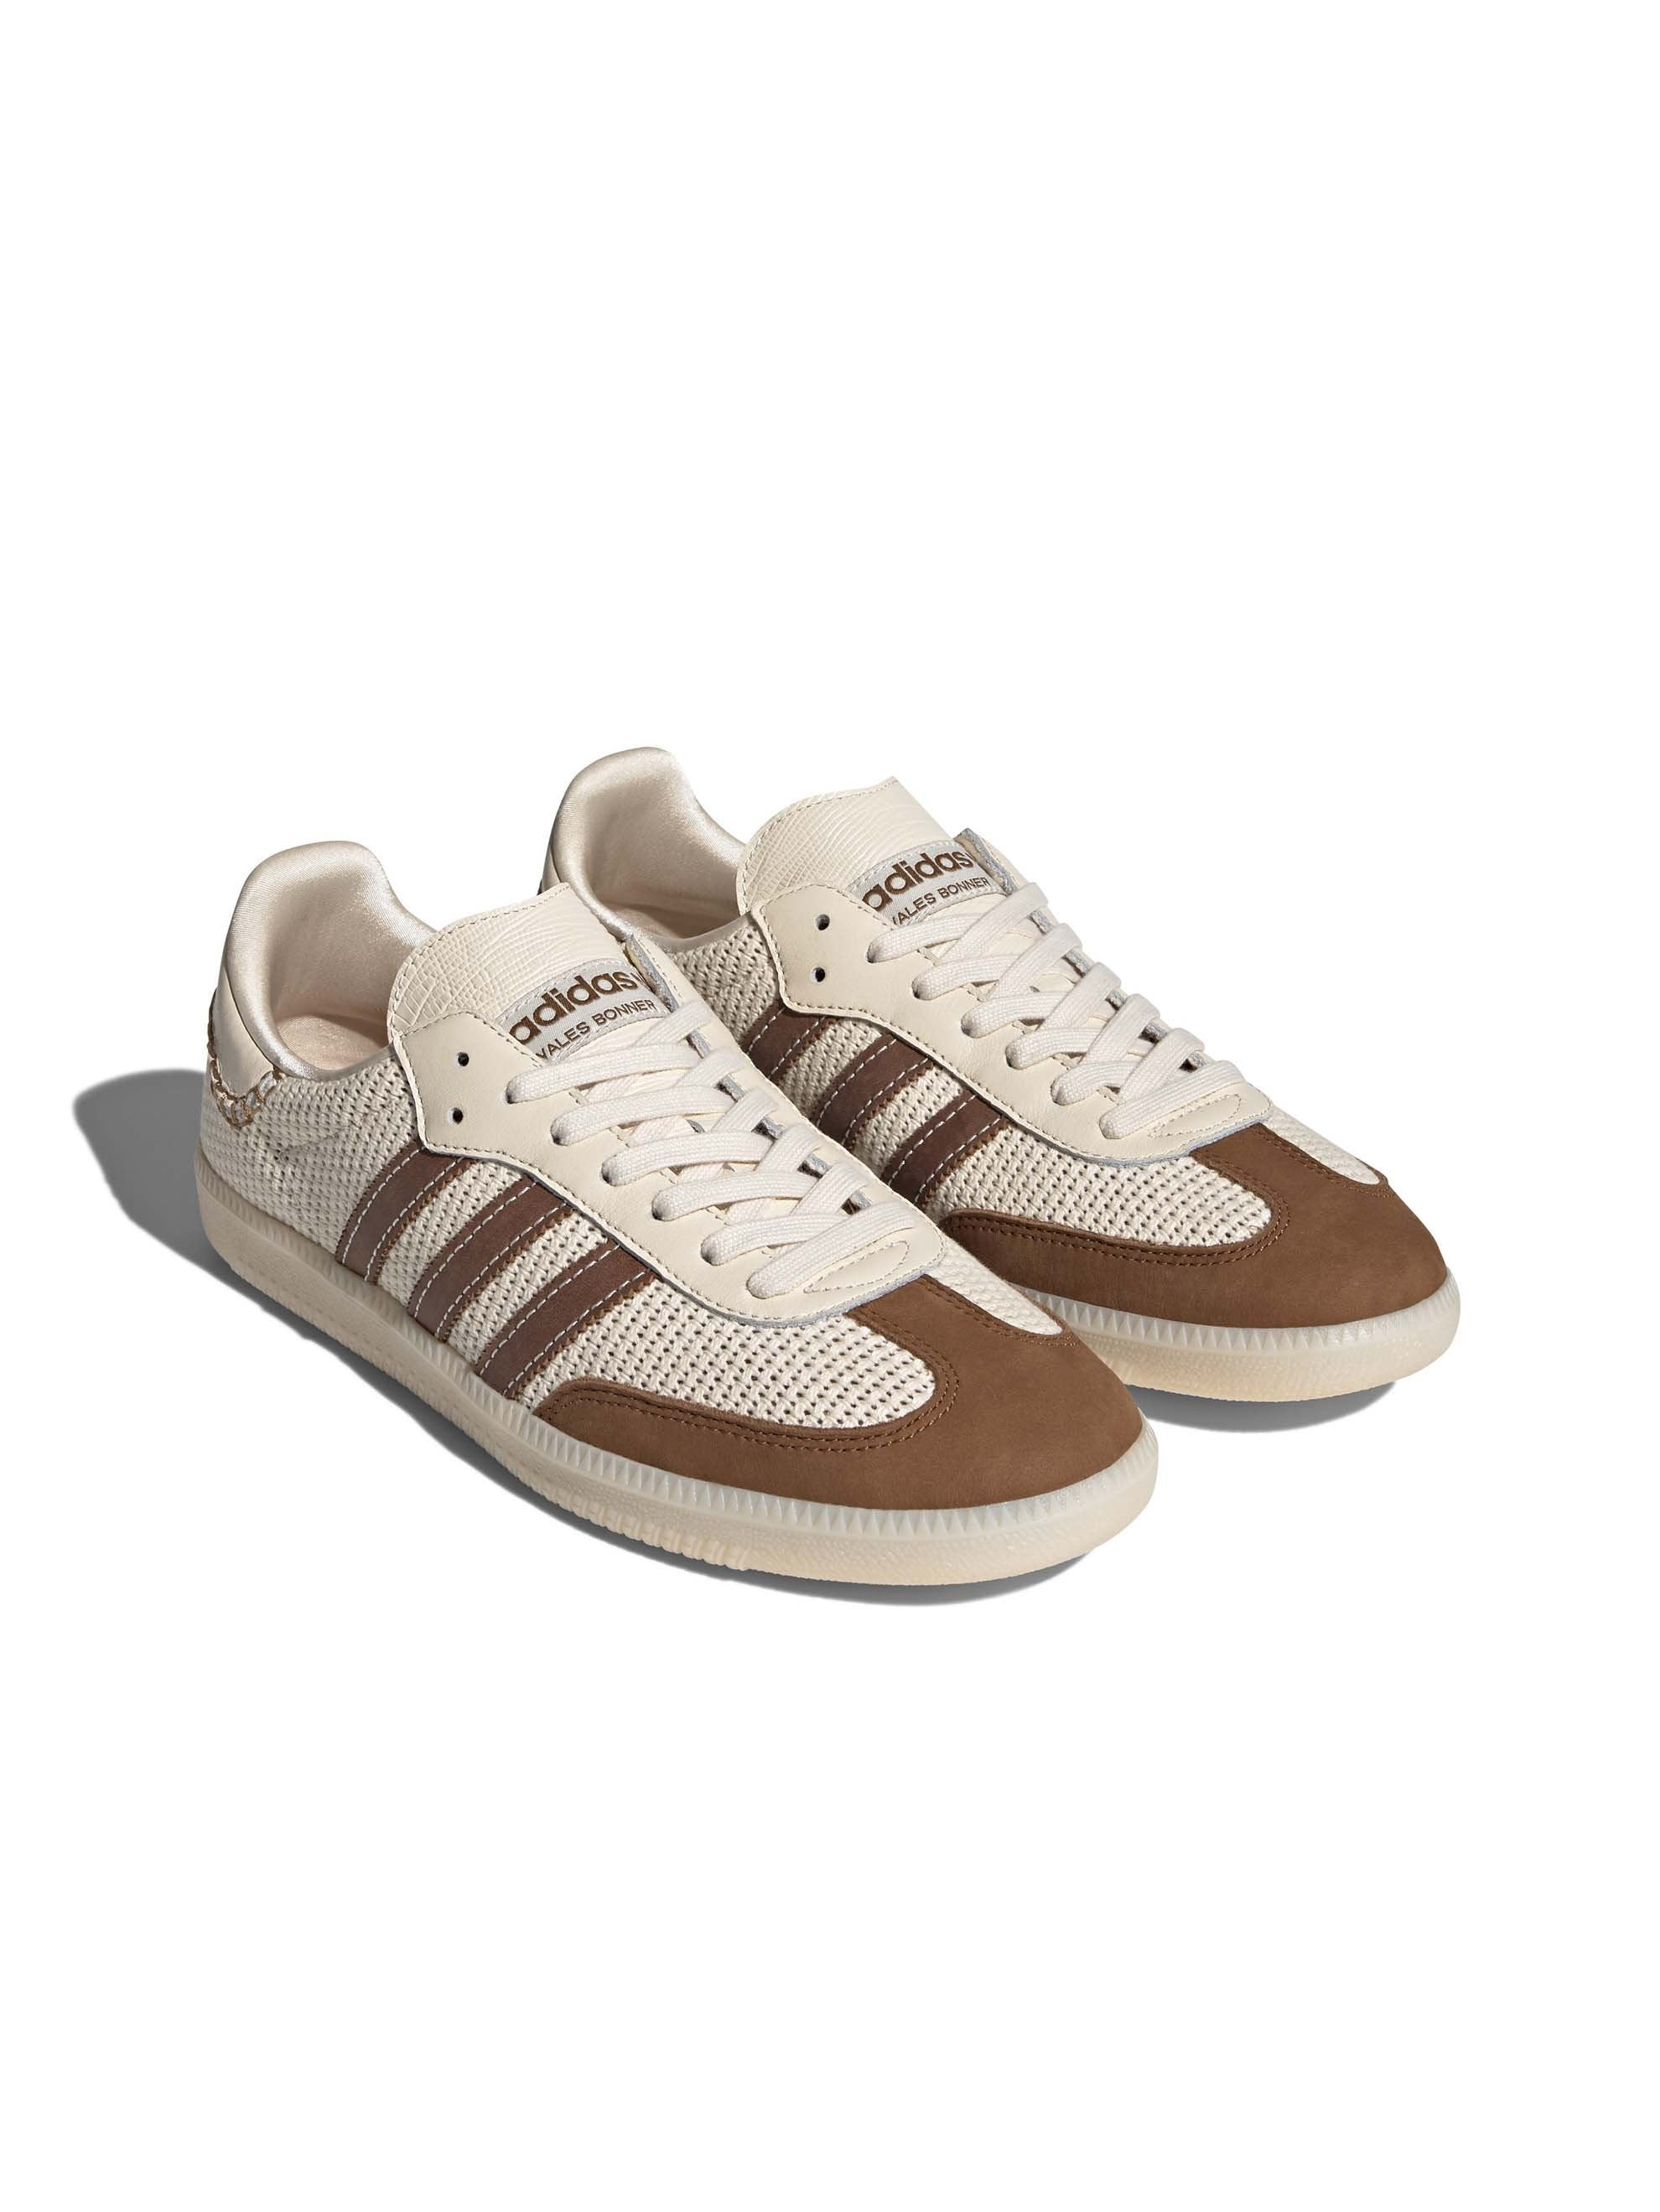 Cream White / Brown Adidas x Wales Bonner Samba 2